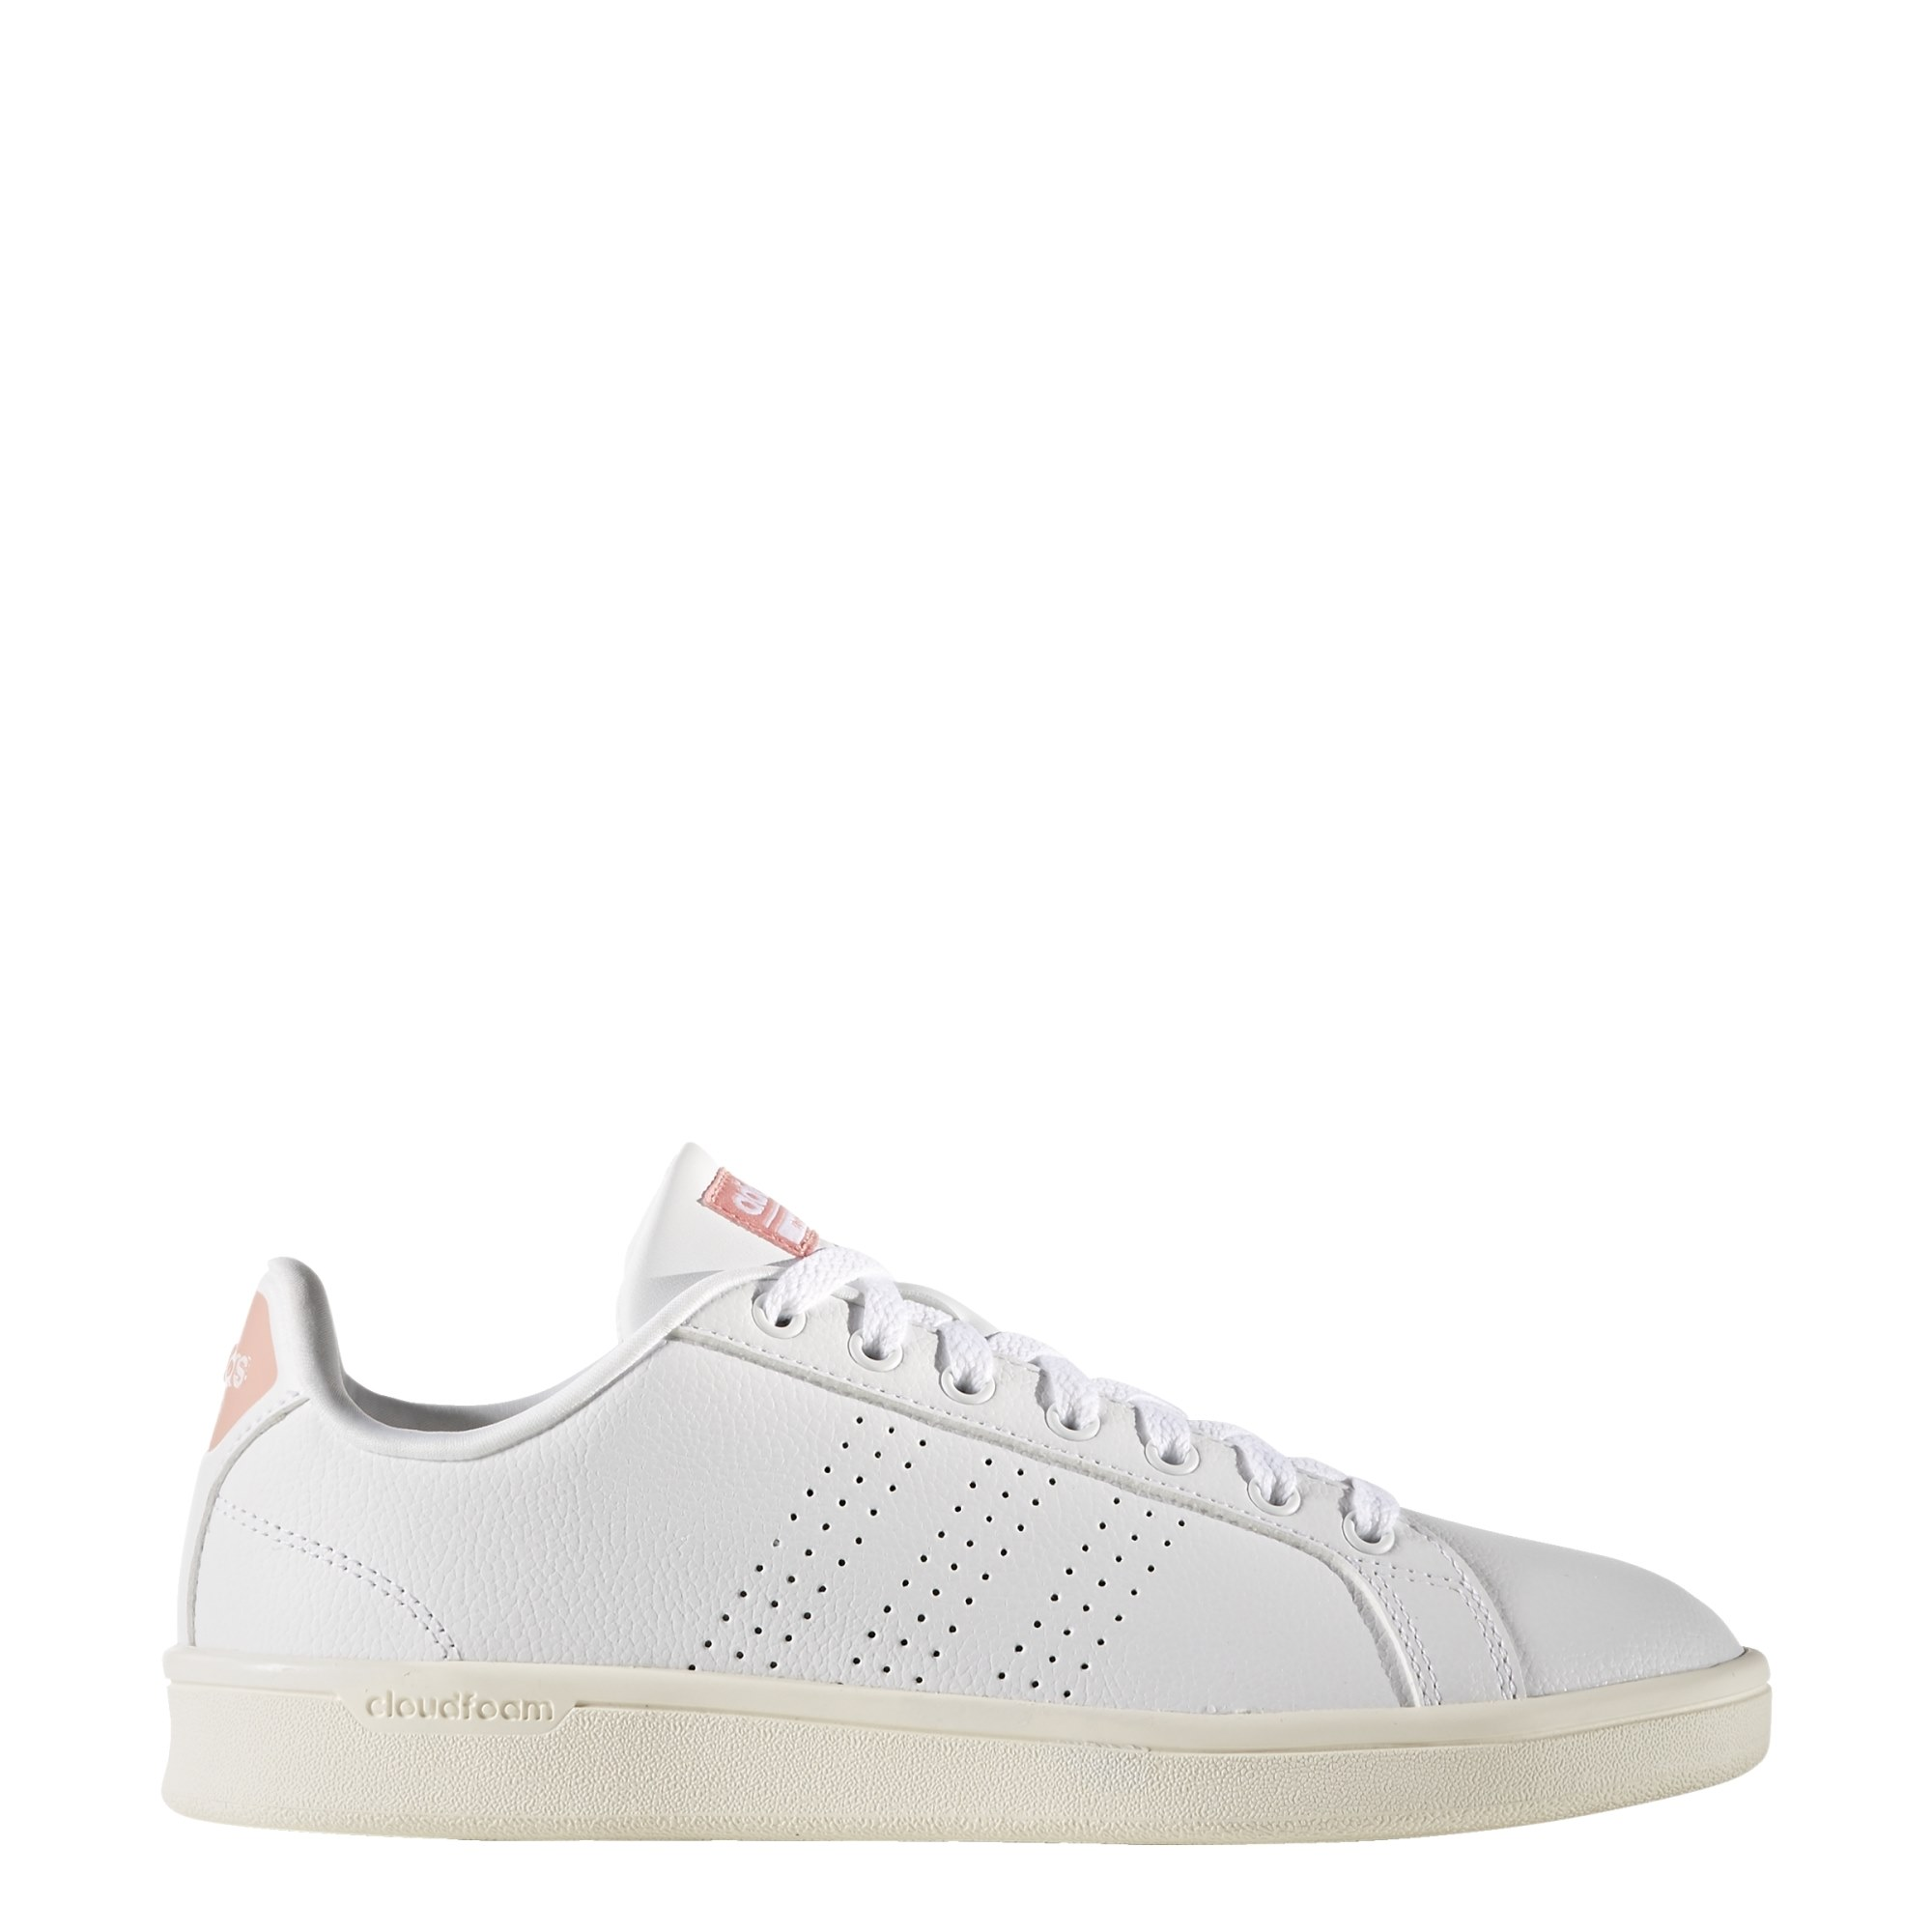 adidas cloudfoam dames wit